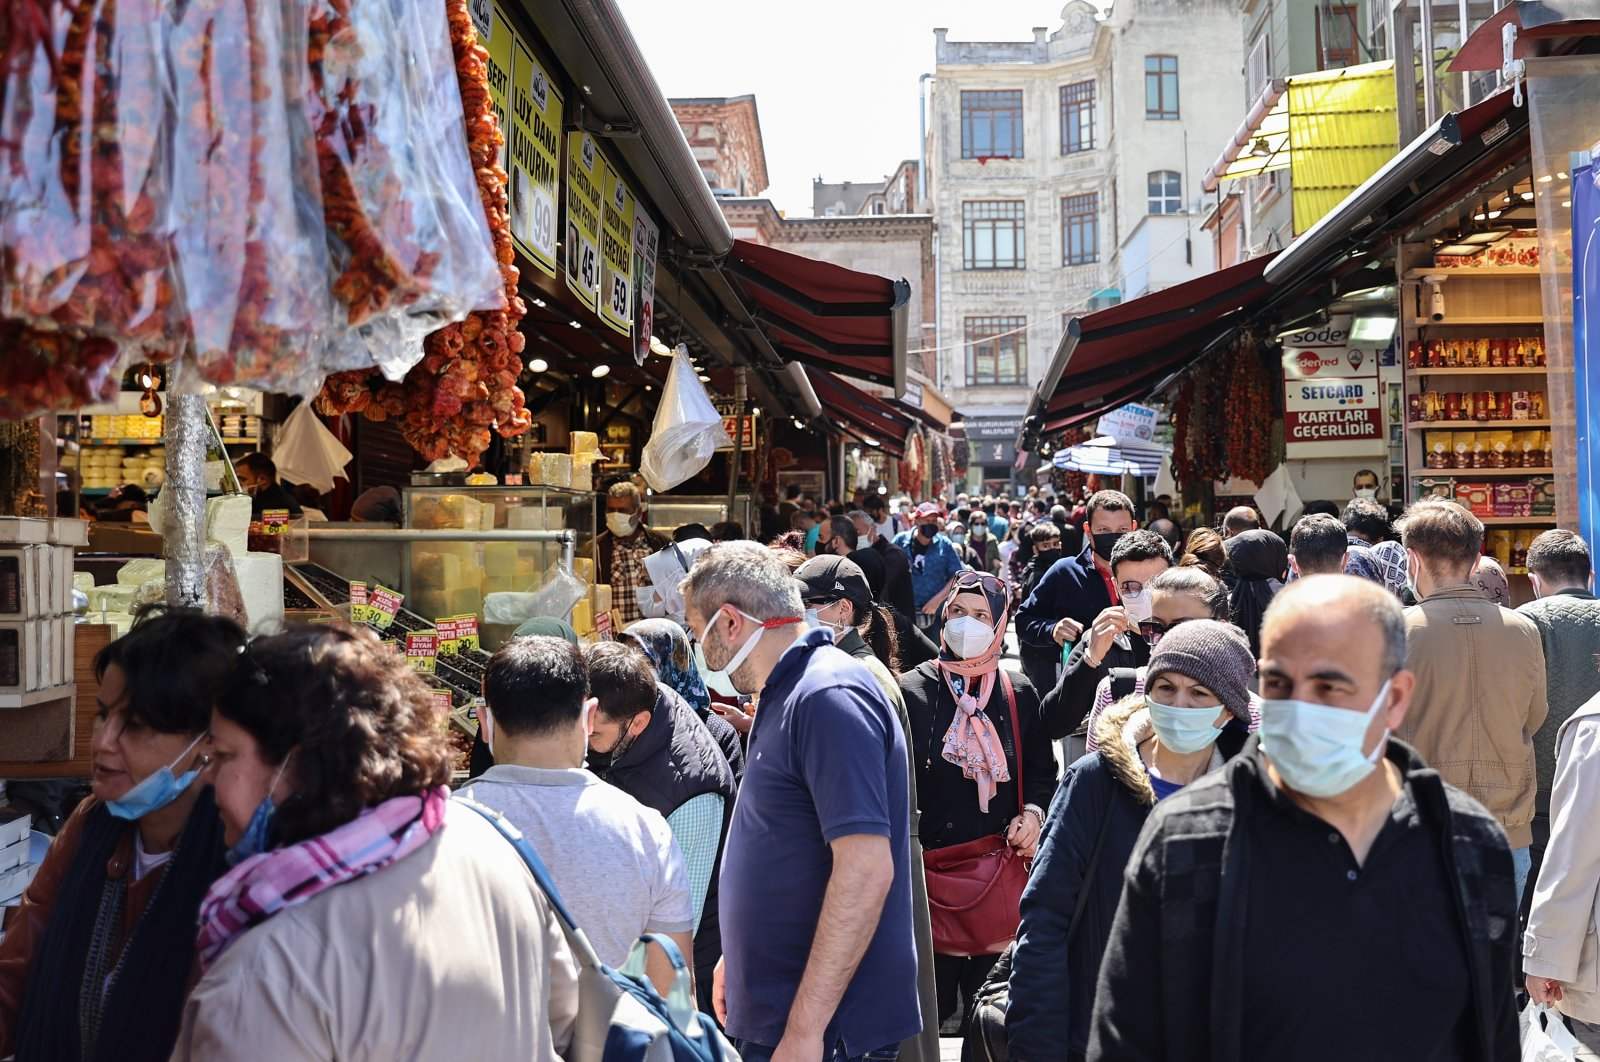 People shop at a crowded marketplace in Eminönü quarter, in Istanbul, Turkey, April 29, 2021. (AA PHOTO)